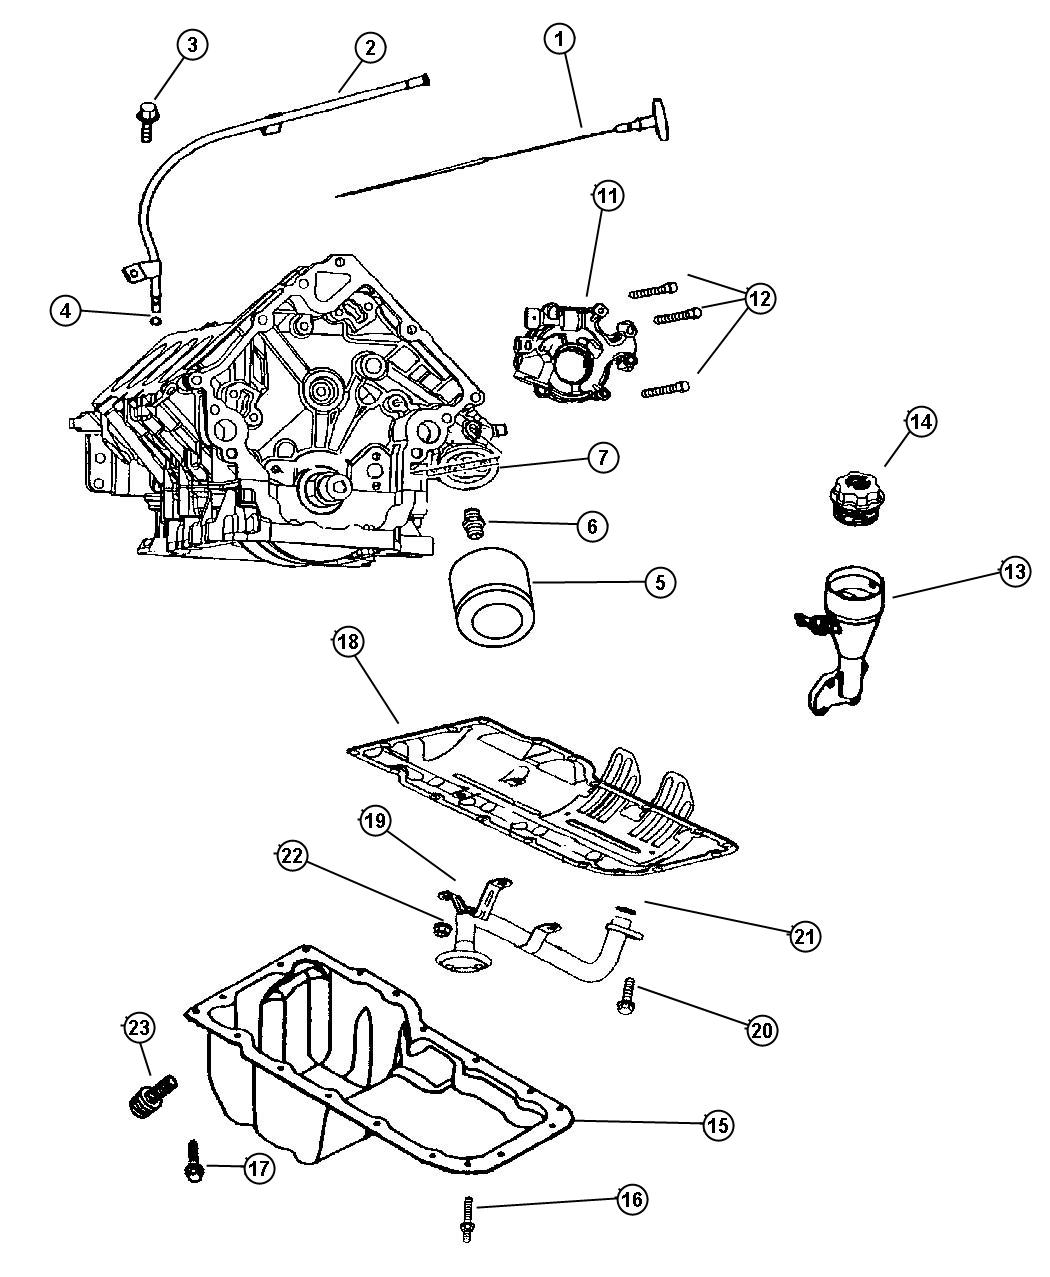 Dodge Ram Bolt Used For Bolt And Coned Washer Used